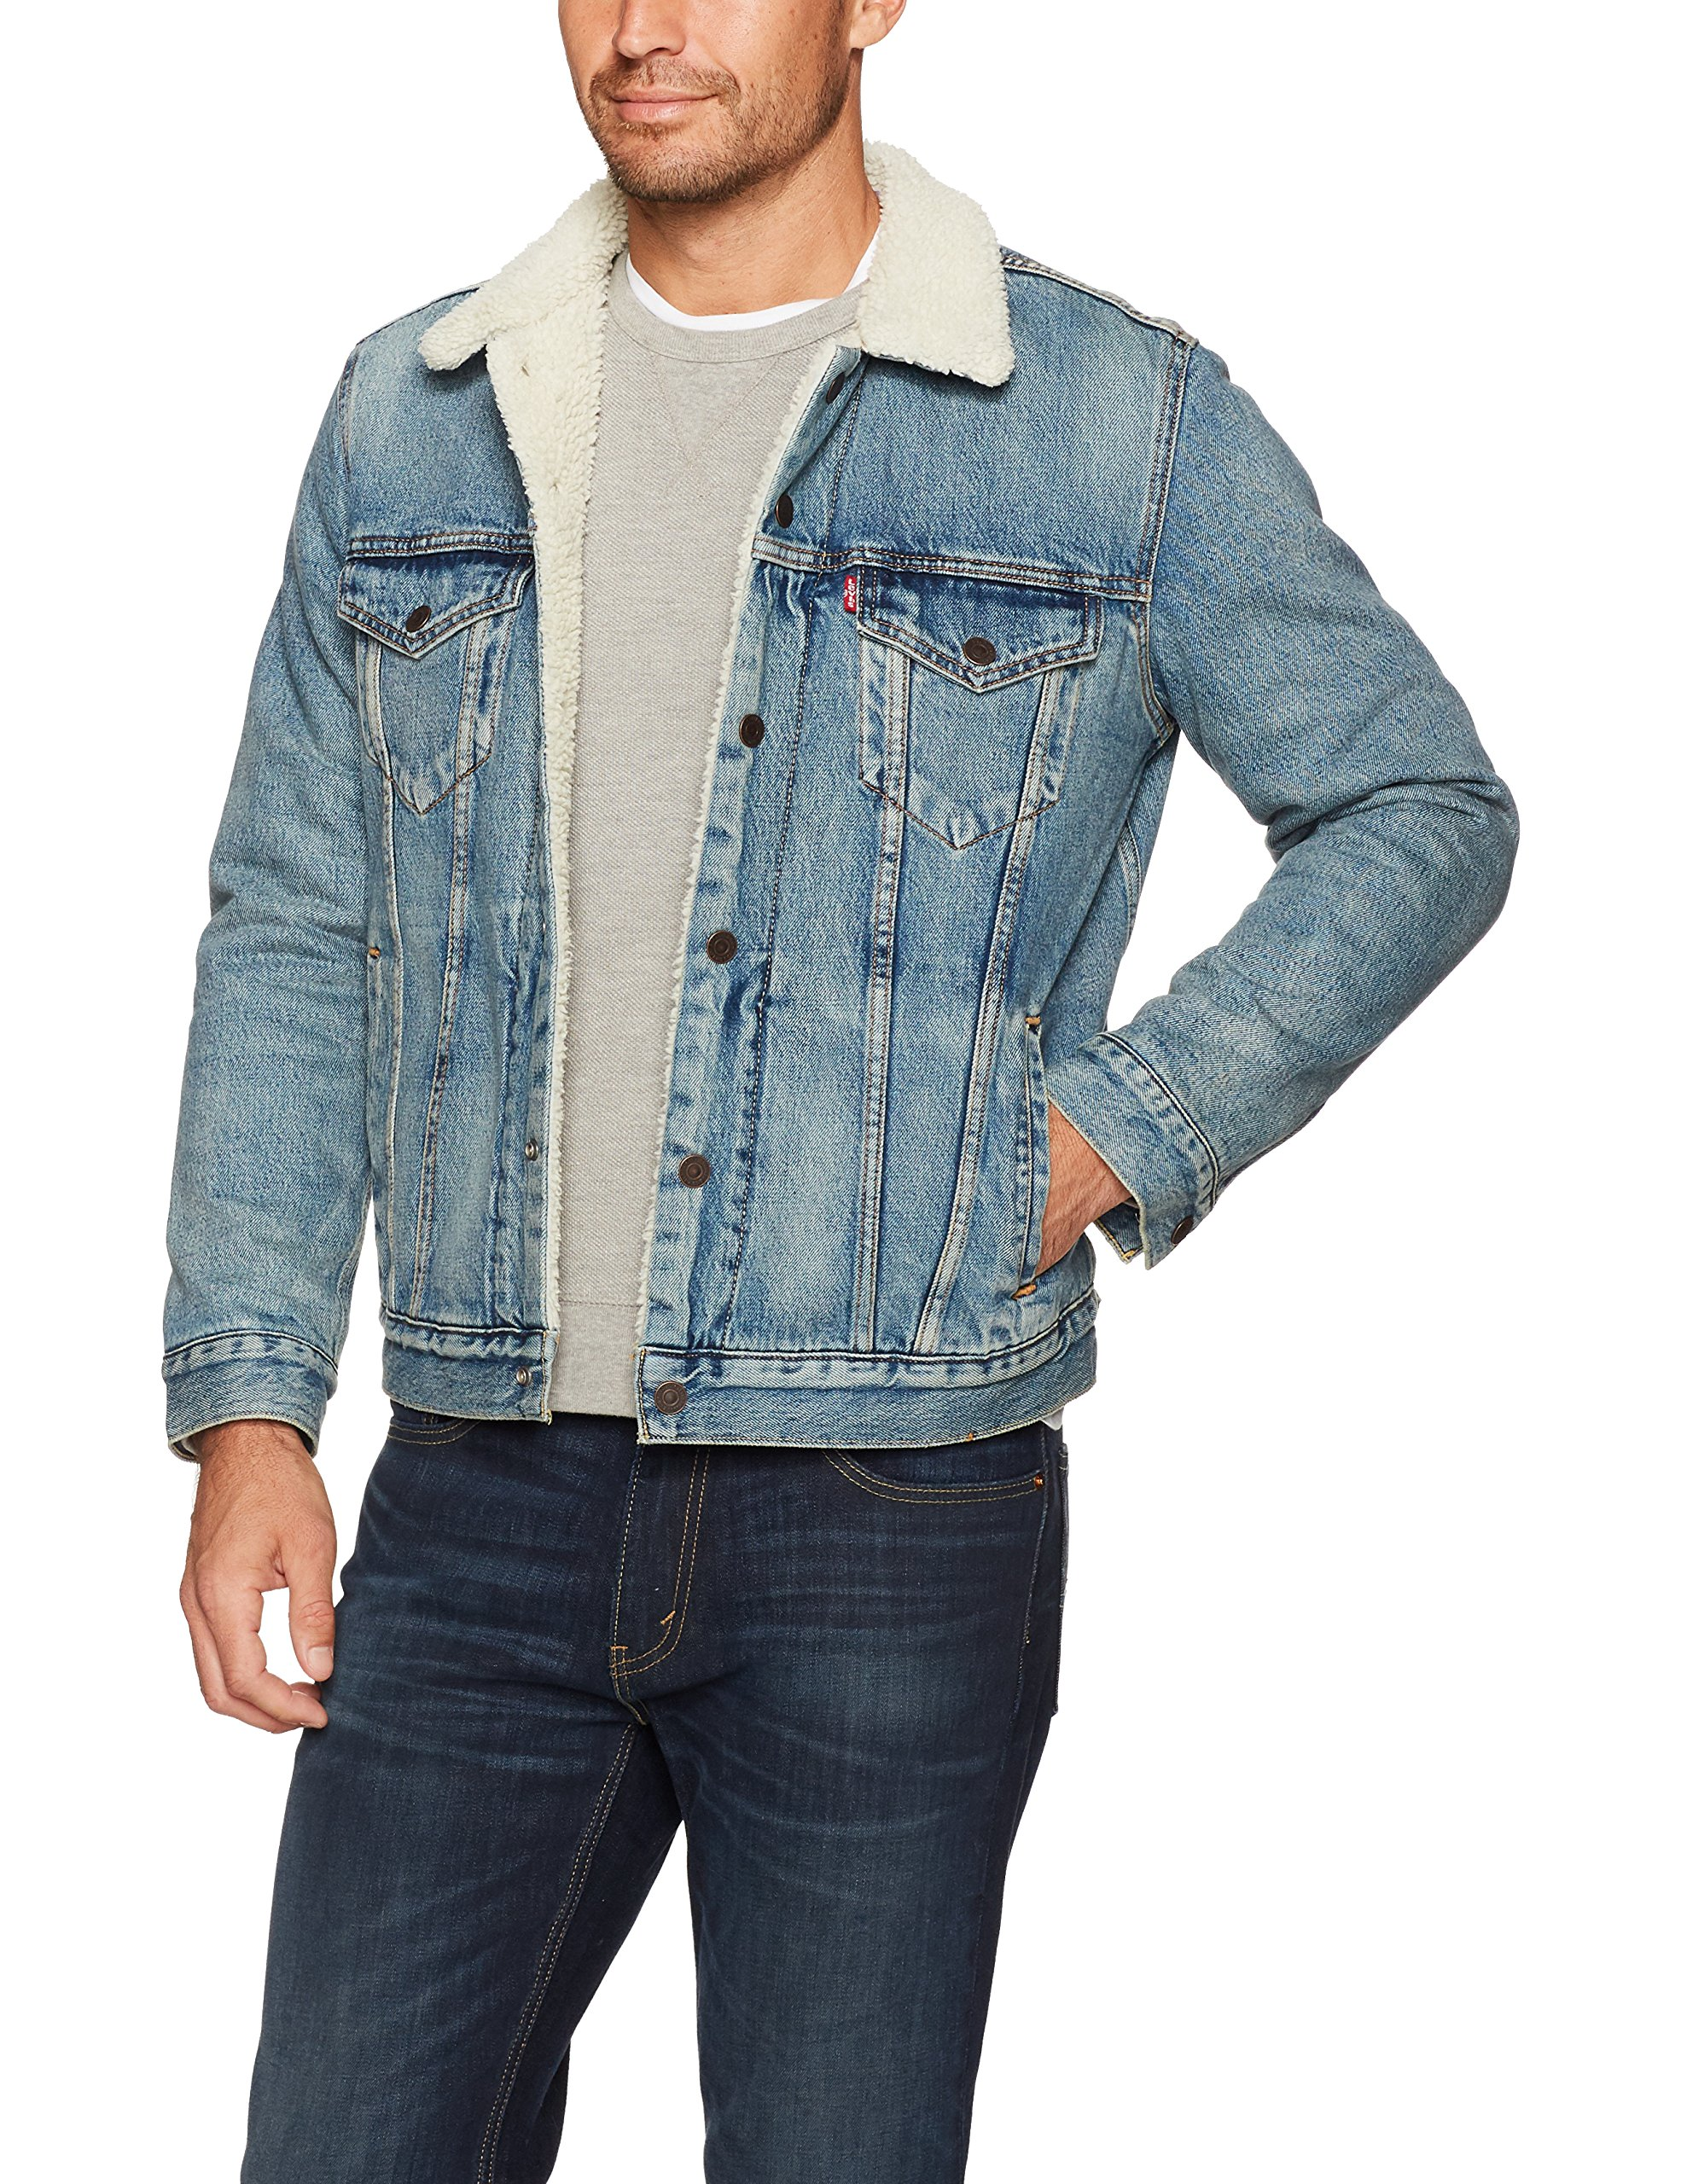 Levi's Men's Type III Sherpa Jacket, Mustard Blue Denim, XXL by Levi's